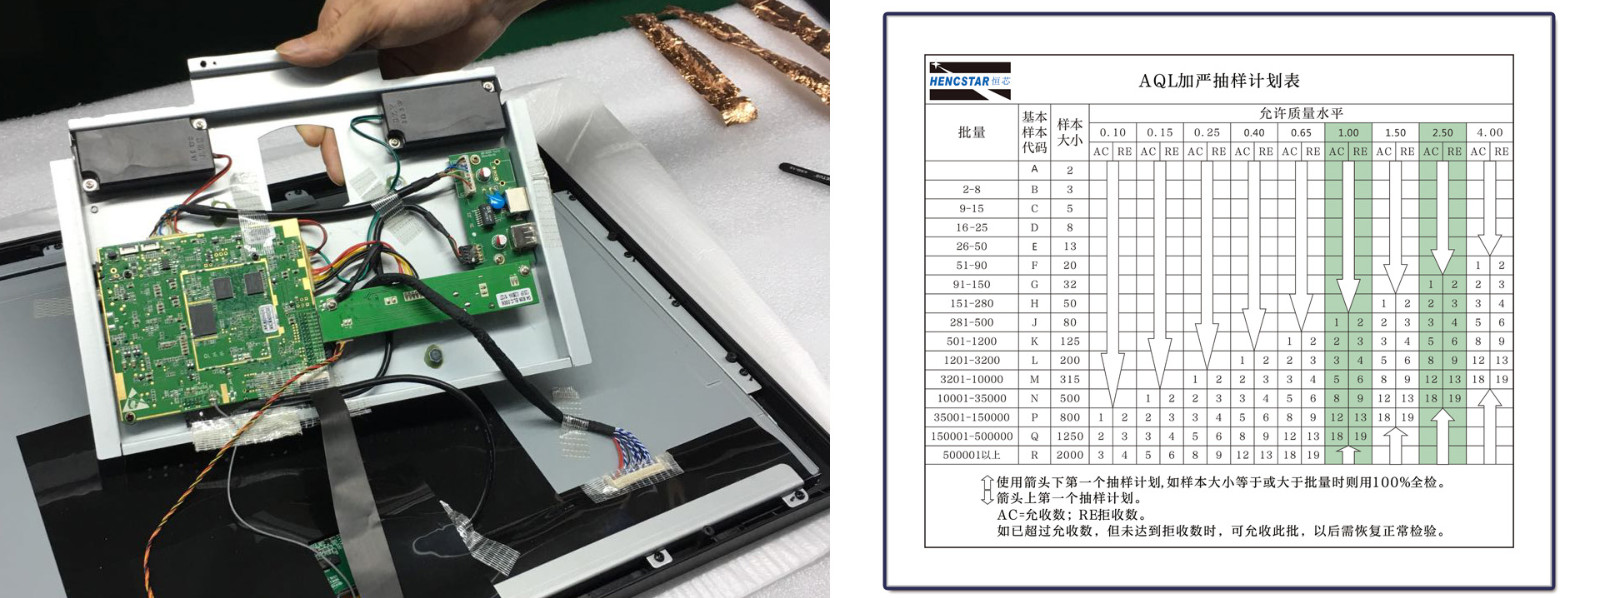 touch panel pc industrial pc Hengstar company